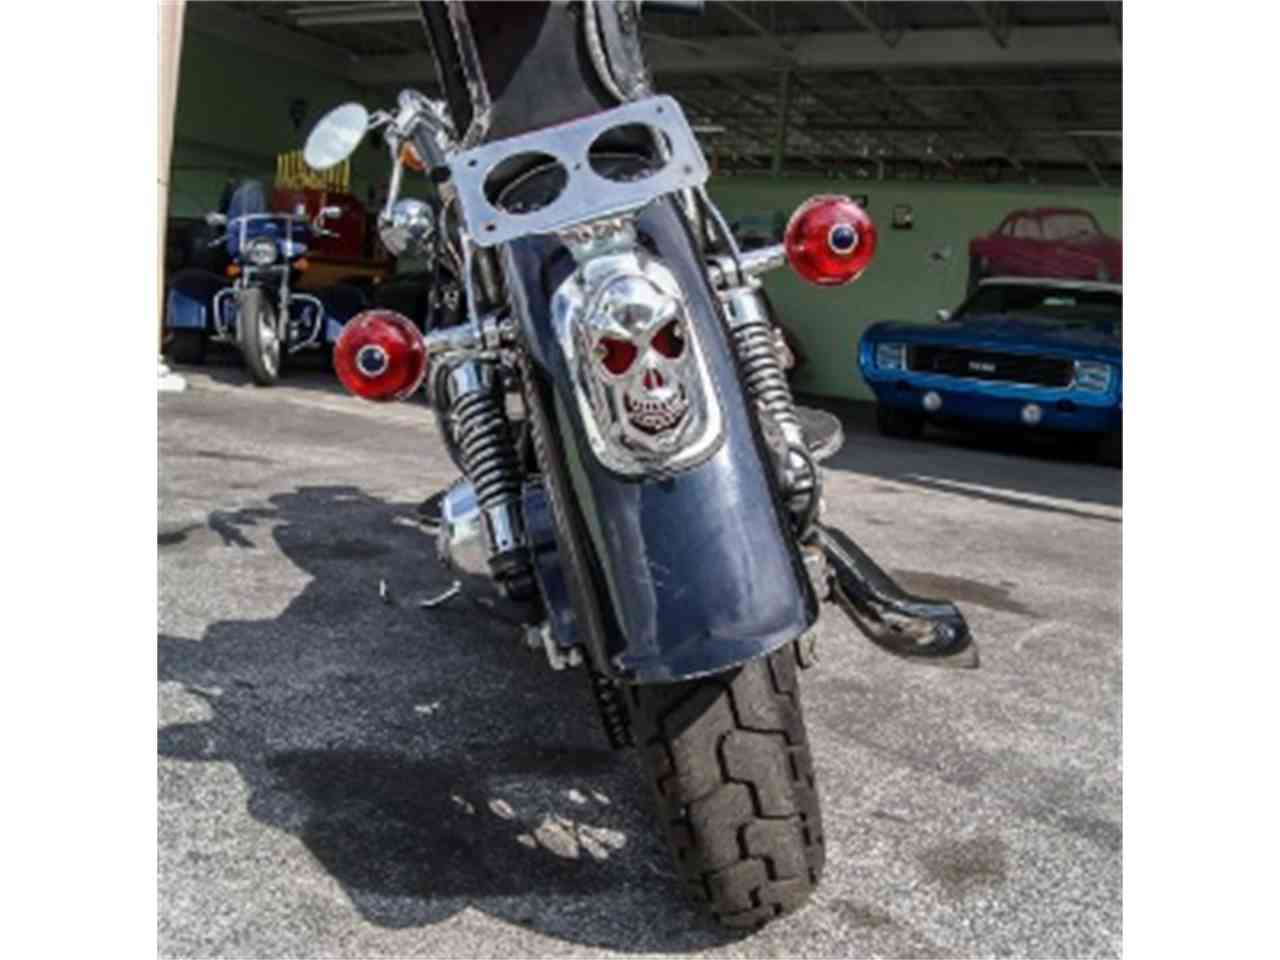 Large Picture of 1982 Harley Davidson located in Miami Florida - $8,500.00 Offered by Sobe Classics - FVQR